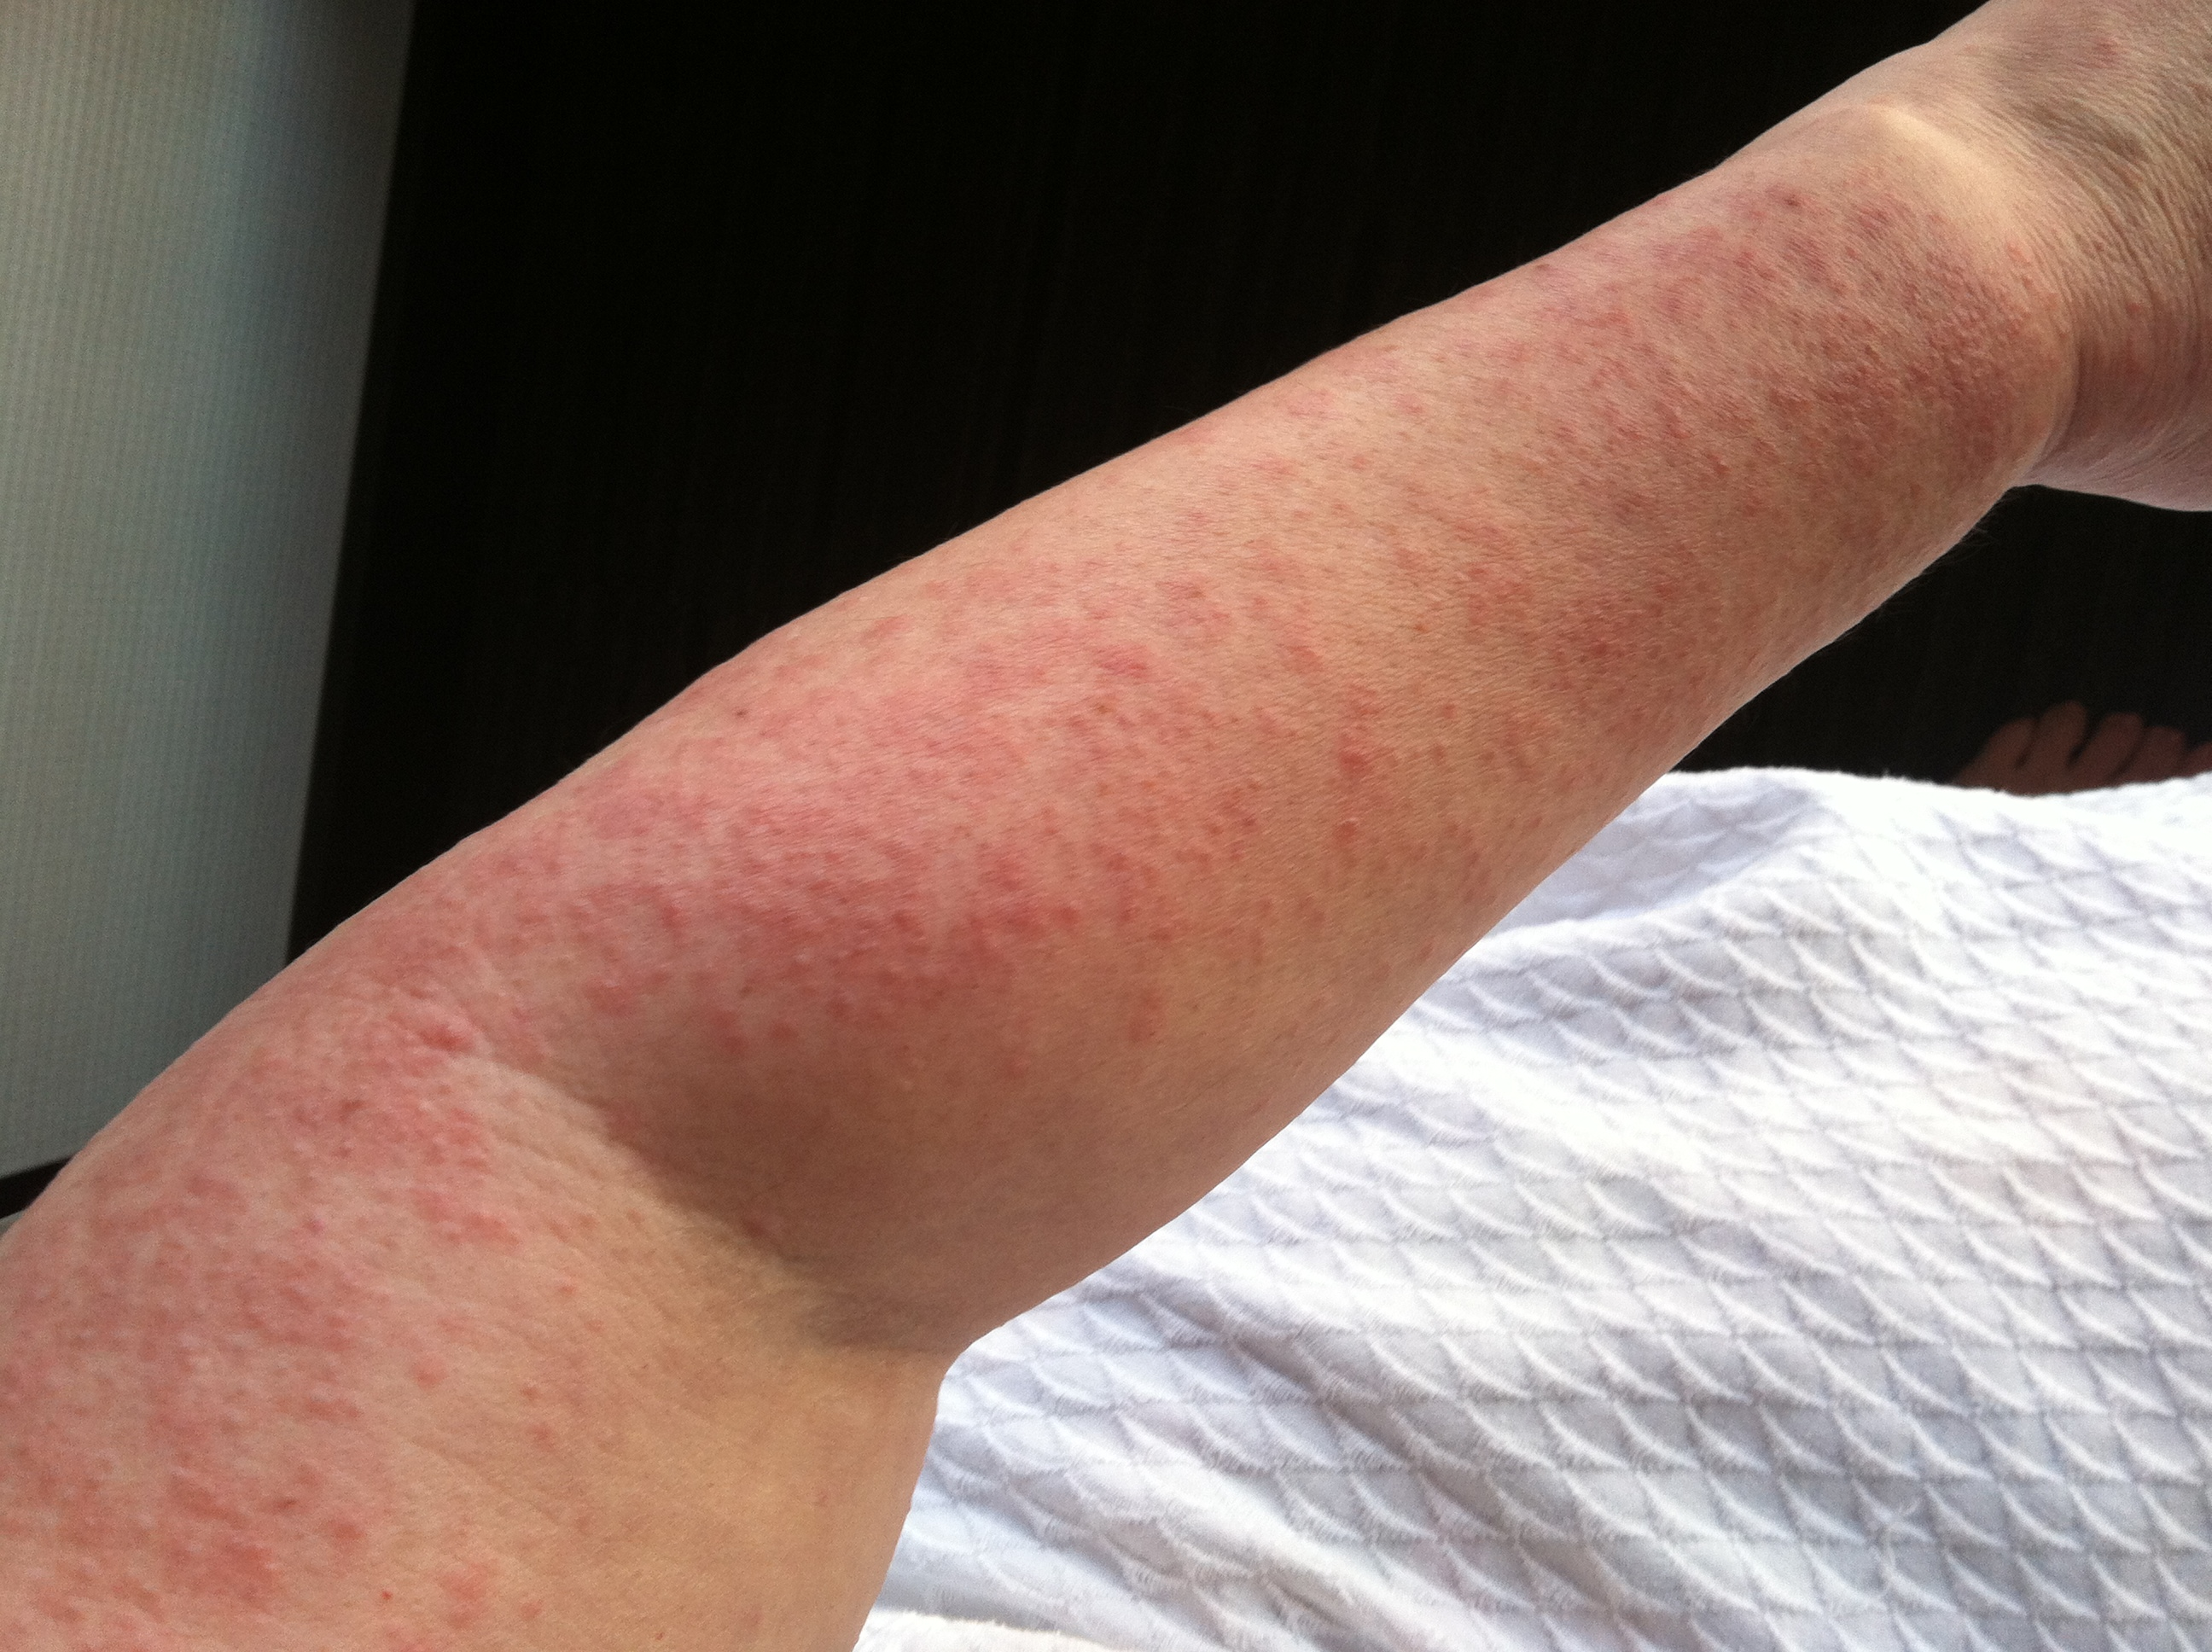 RashResource - Skin Rashes Pictures Symptoms and Treatment